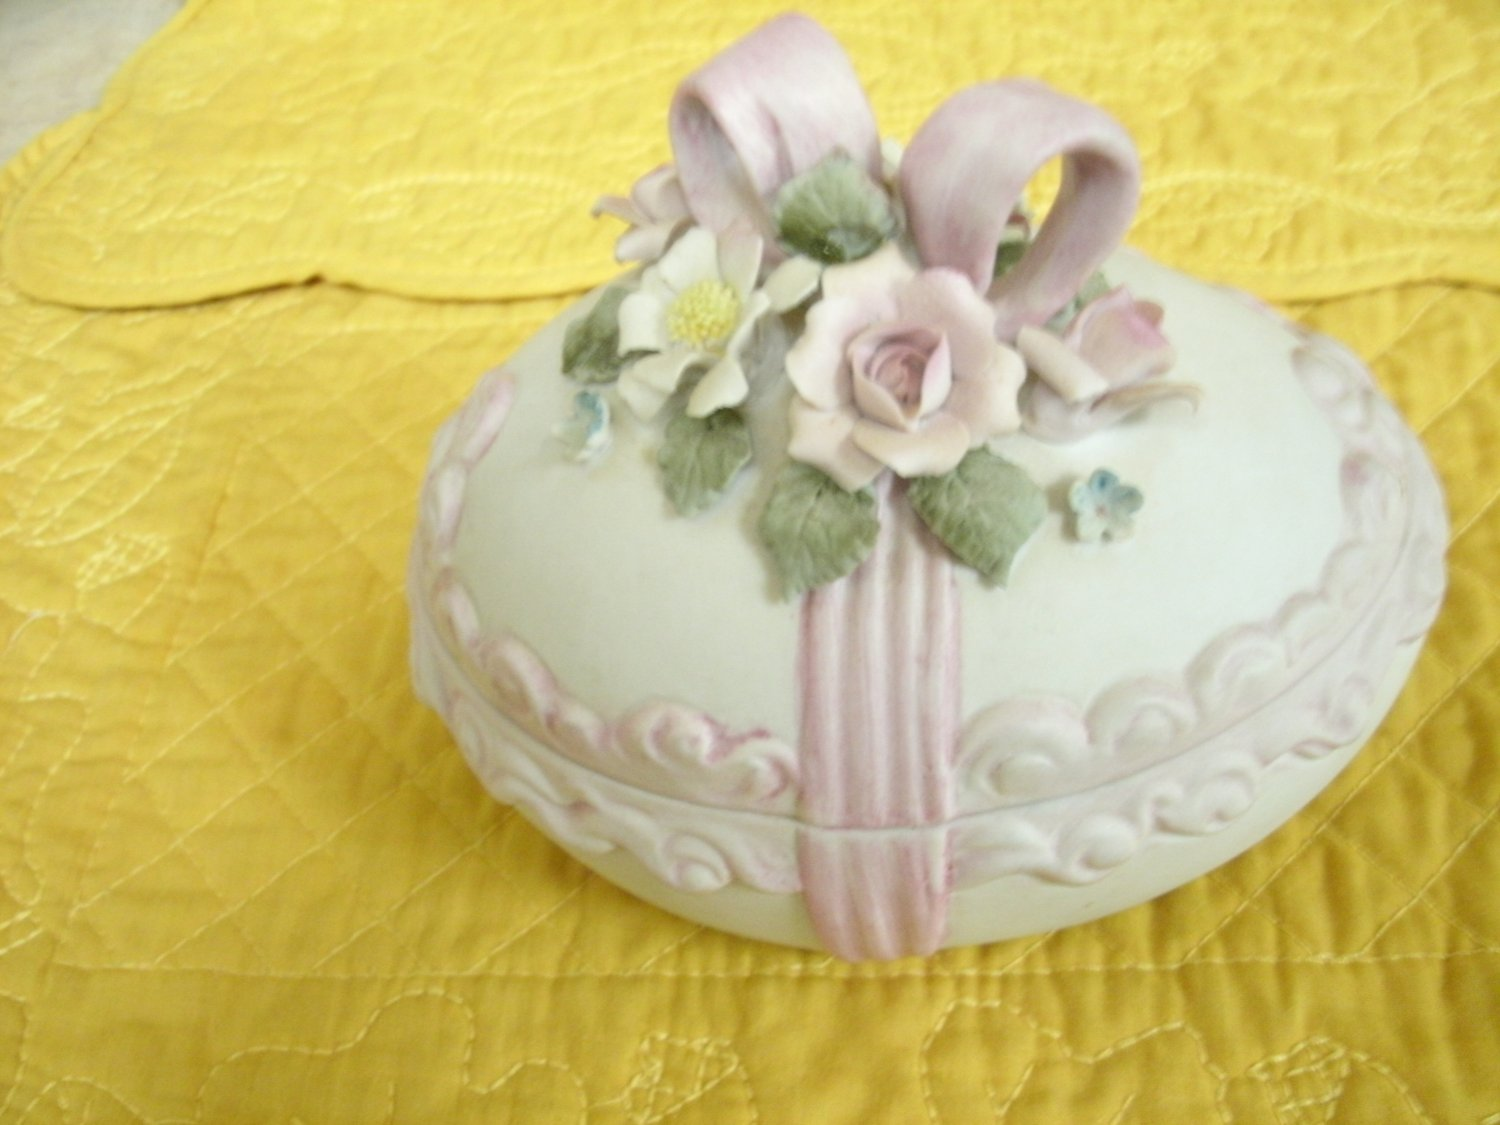 Lefton China Bisque Egg Candy Dish Or Trinket Container 1963 Hand Painted 5 1/2 Inches